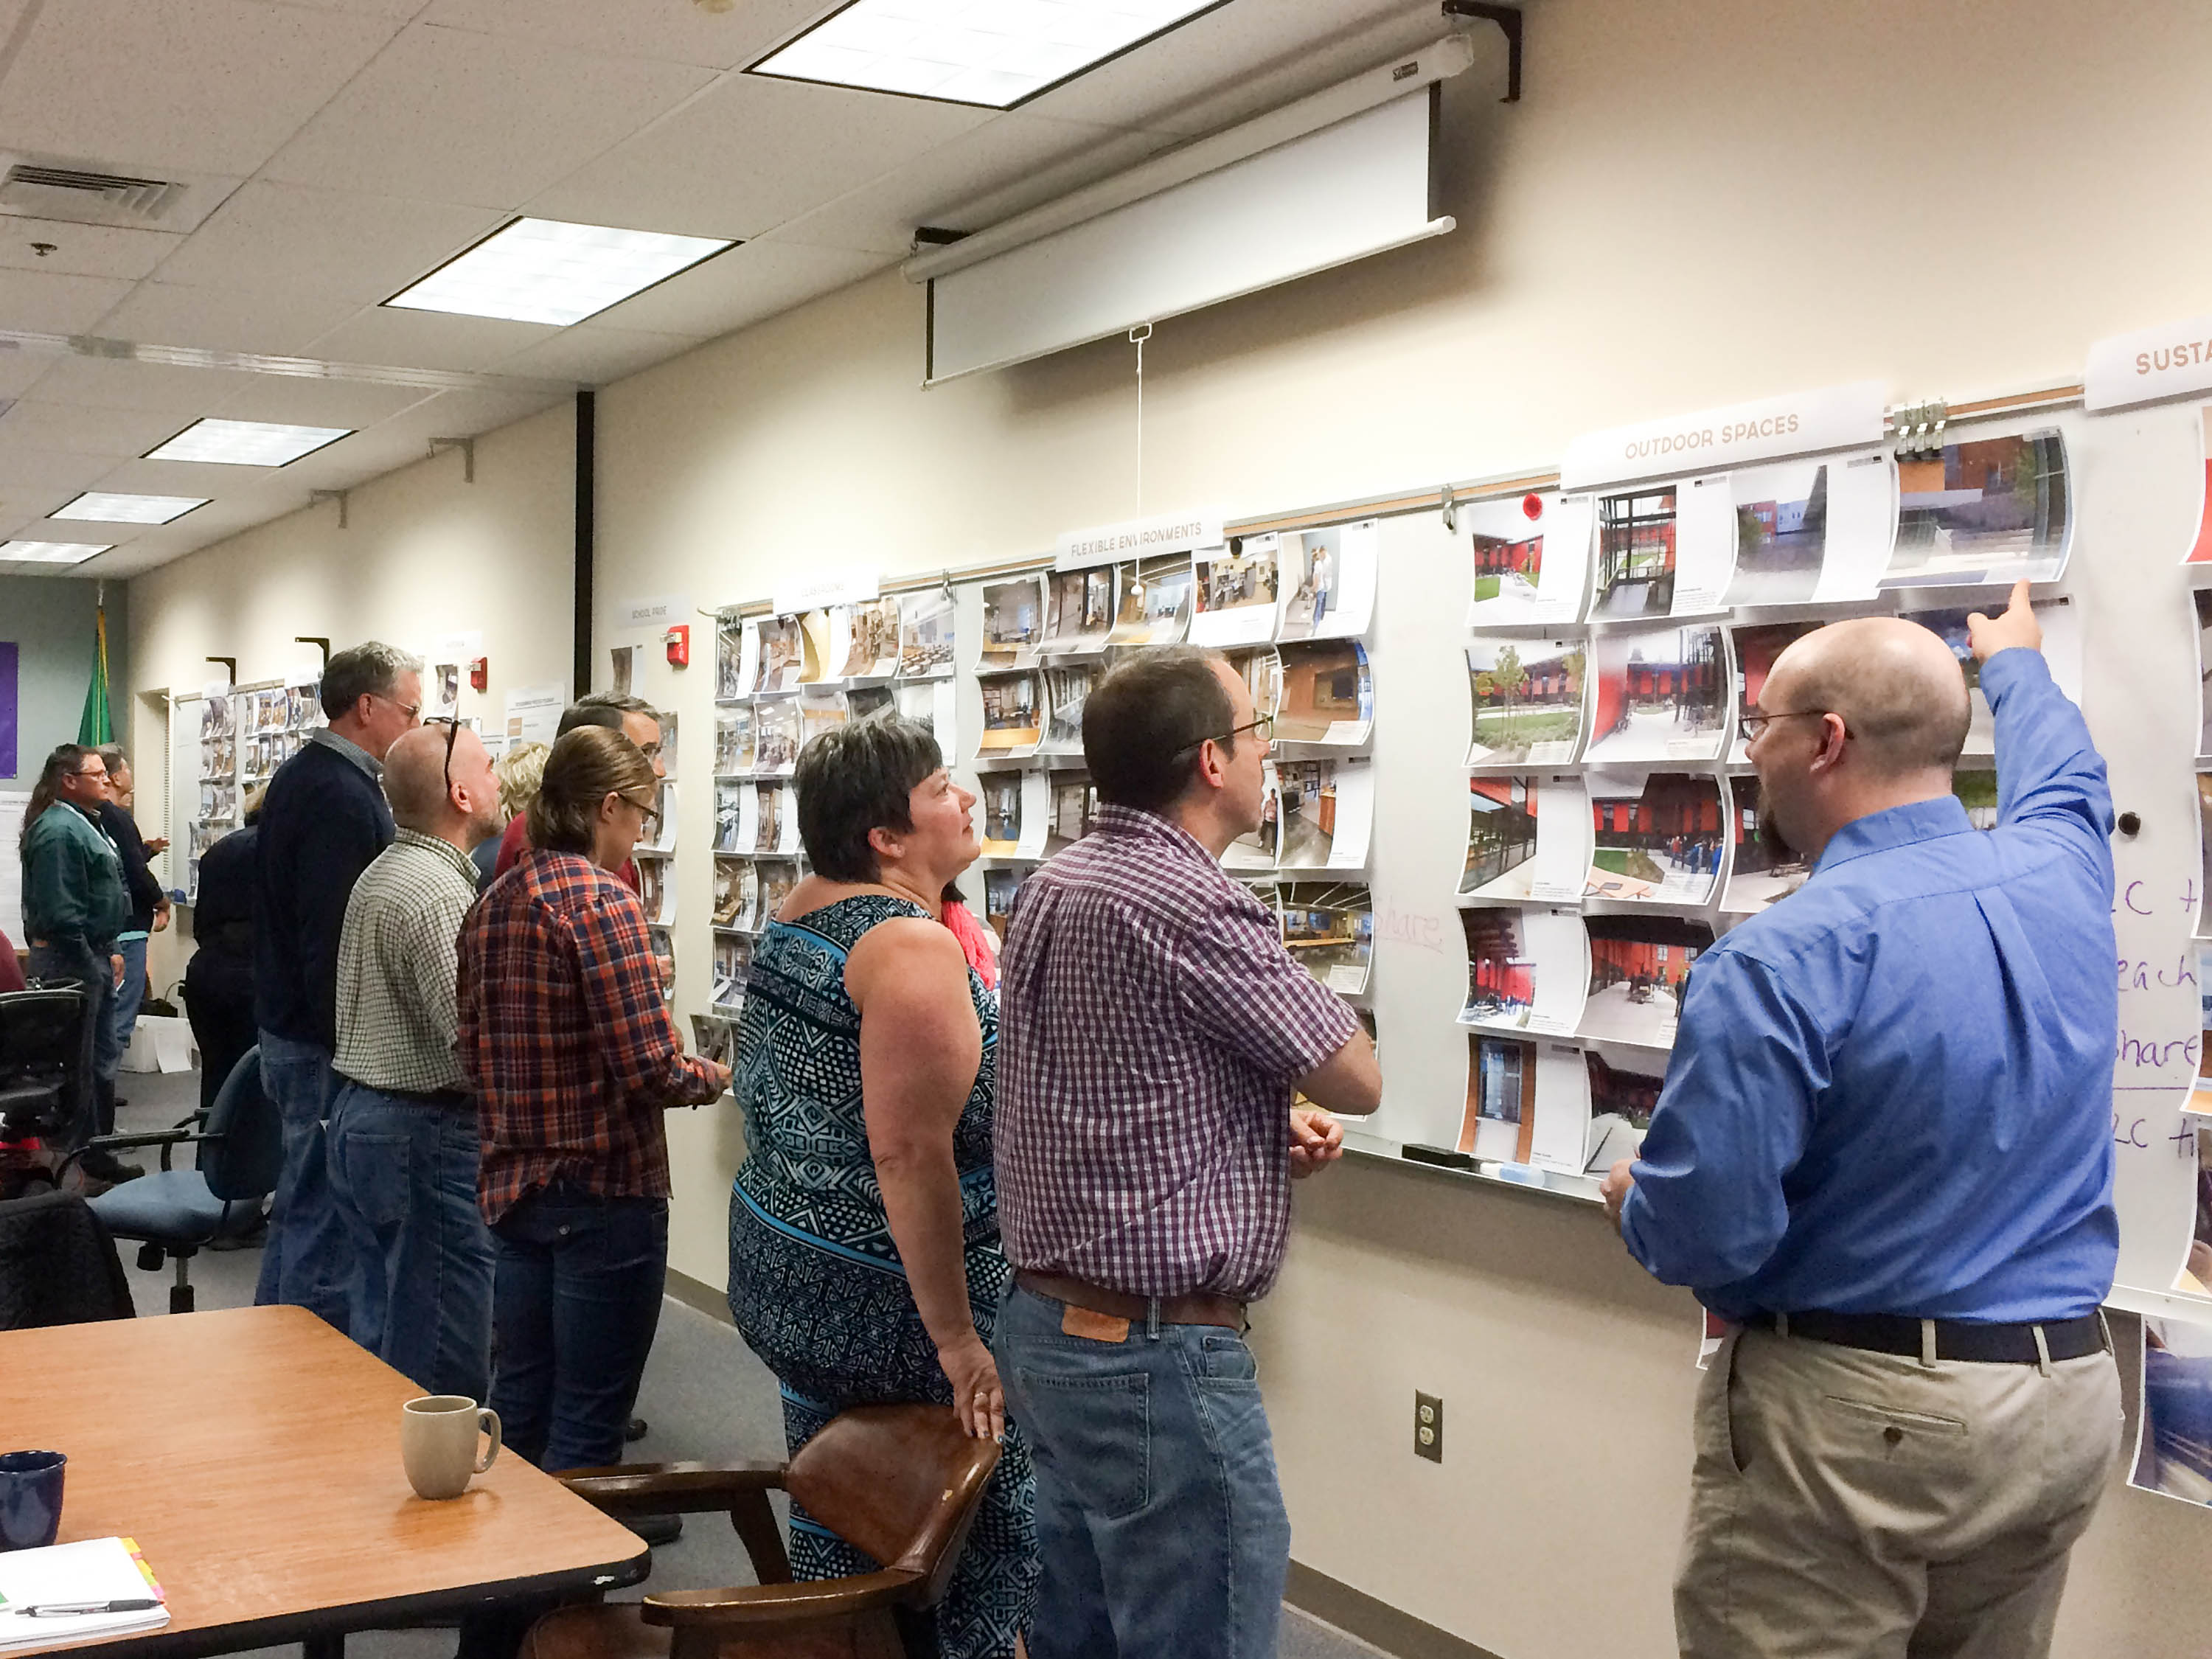 Multiple people standing up and looking over renderings.